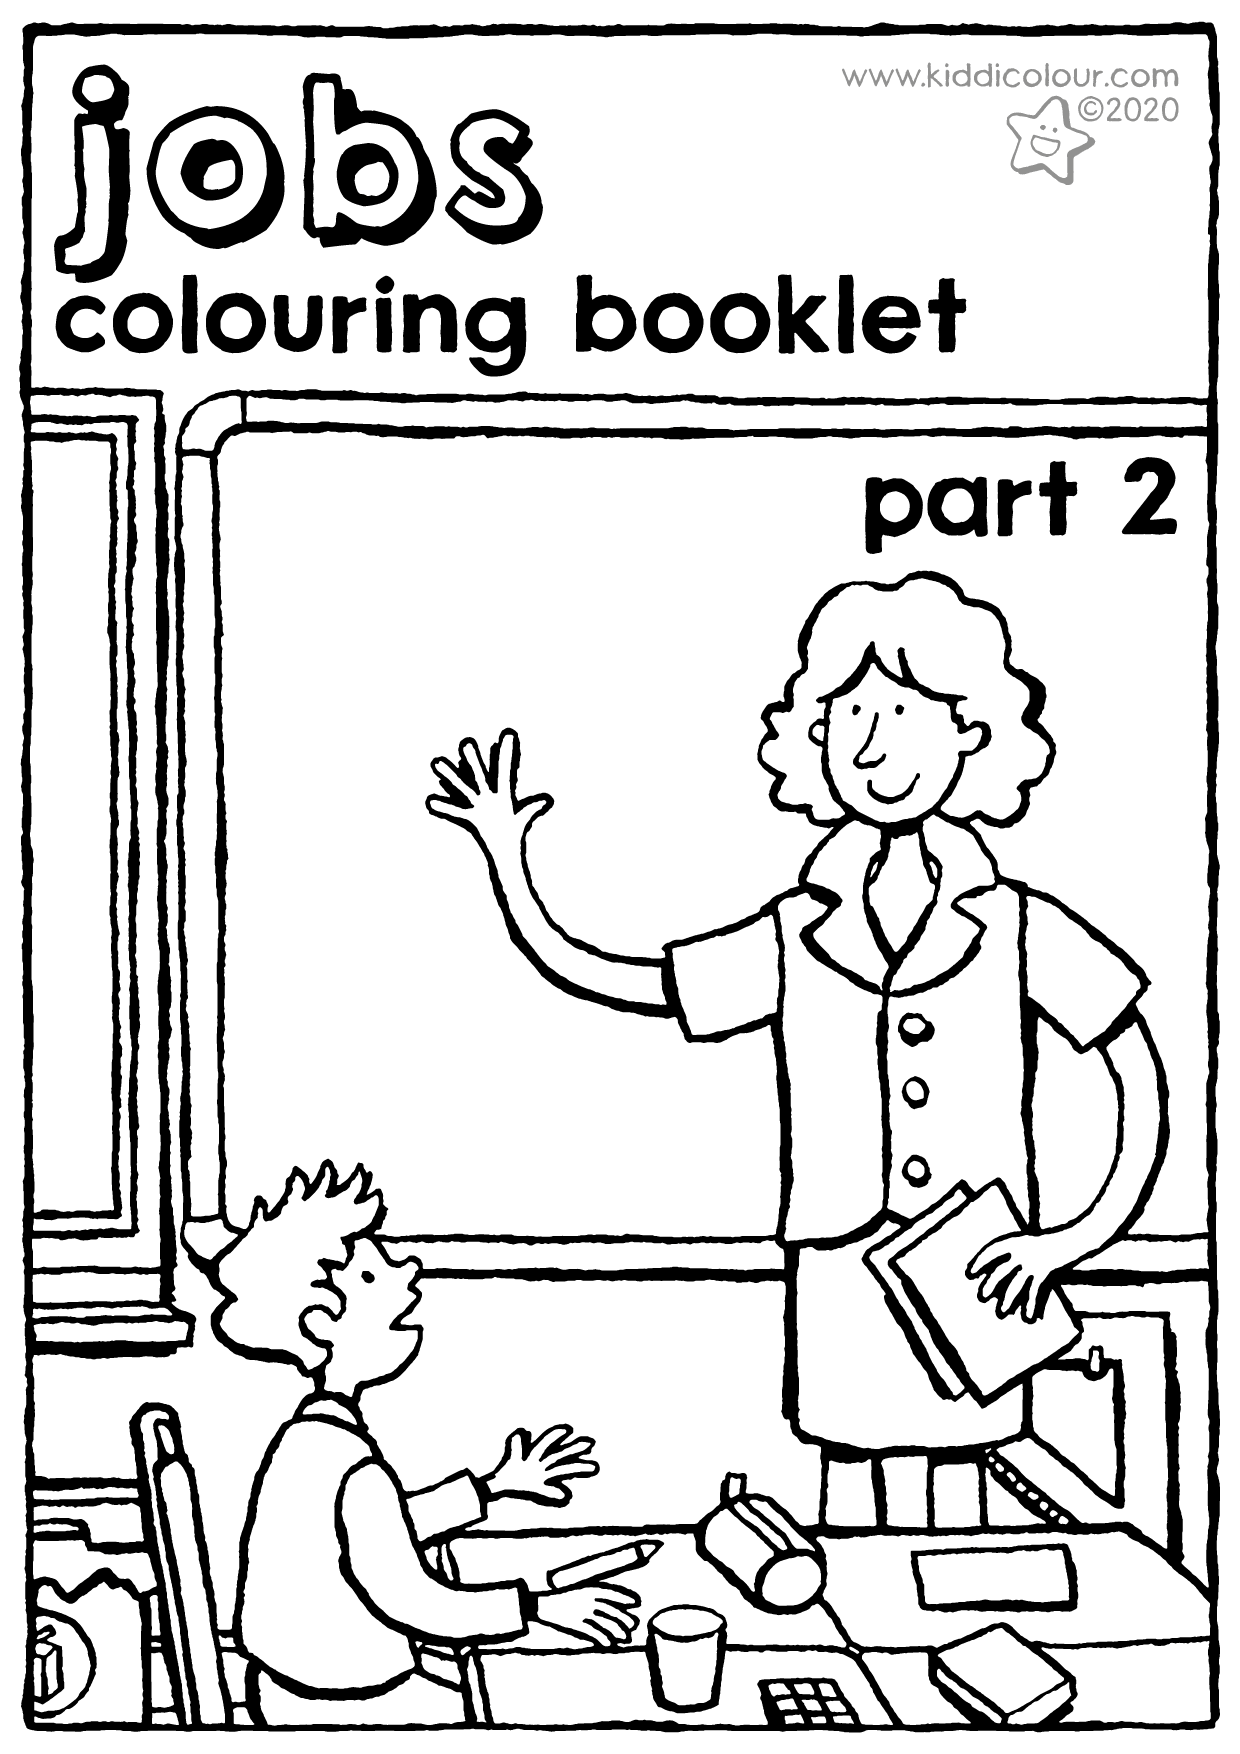 jobs colouring booklet part 2